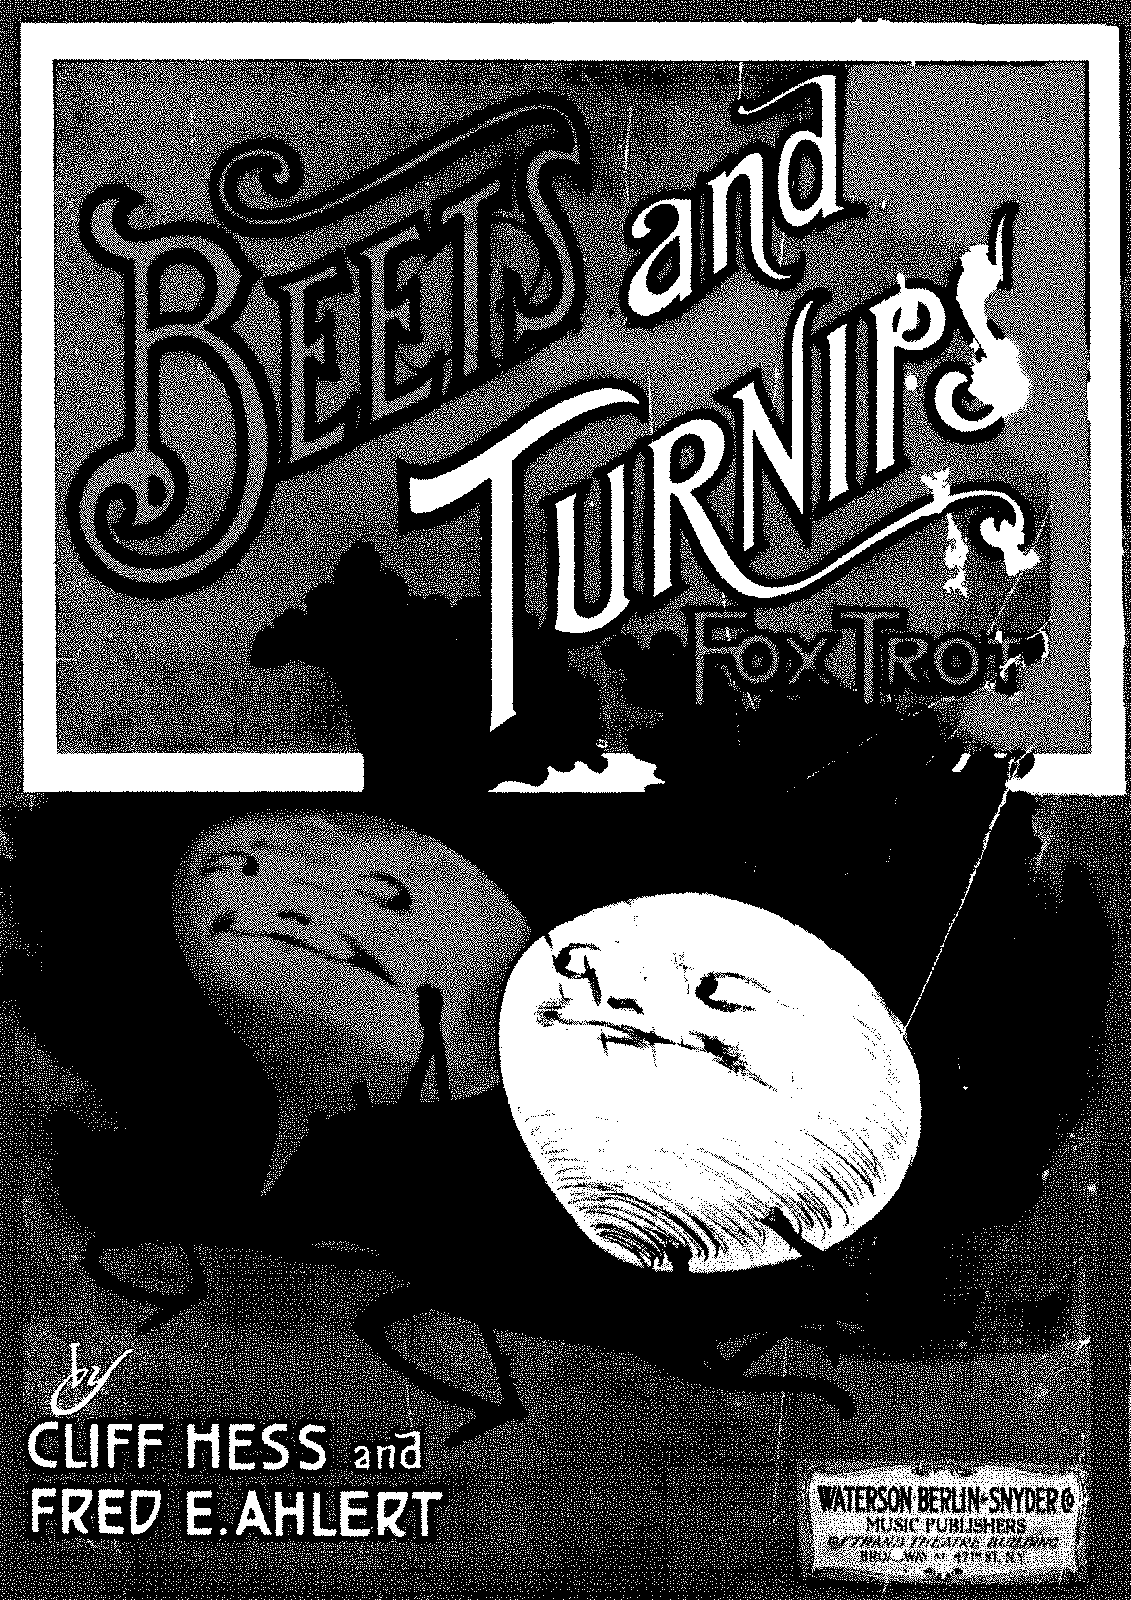 PMLP354669-Ahlert, Fred - 1892-1953 - Beets and Turnip - Fox Trot.pdf